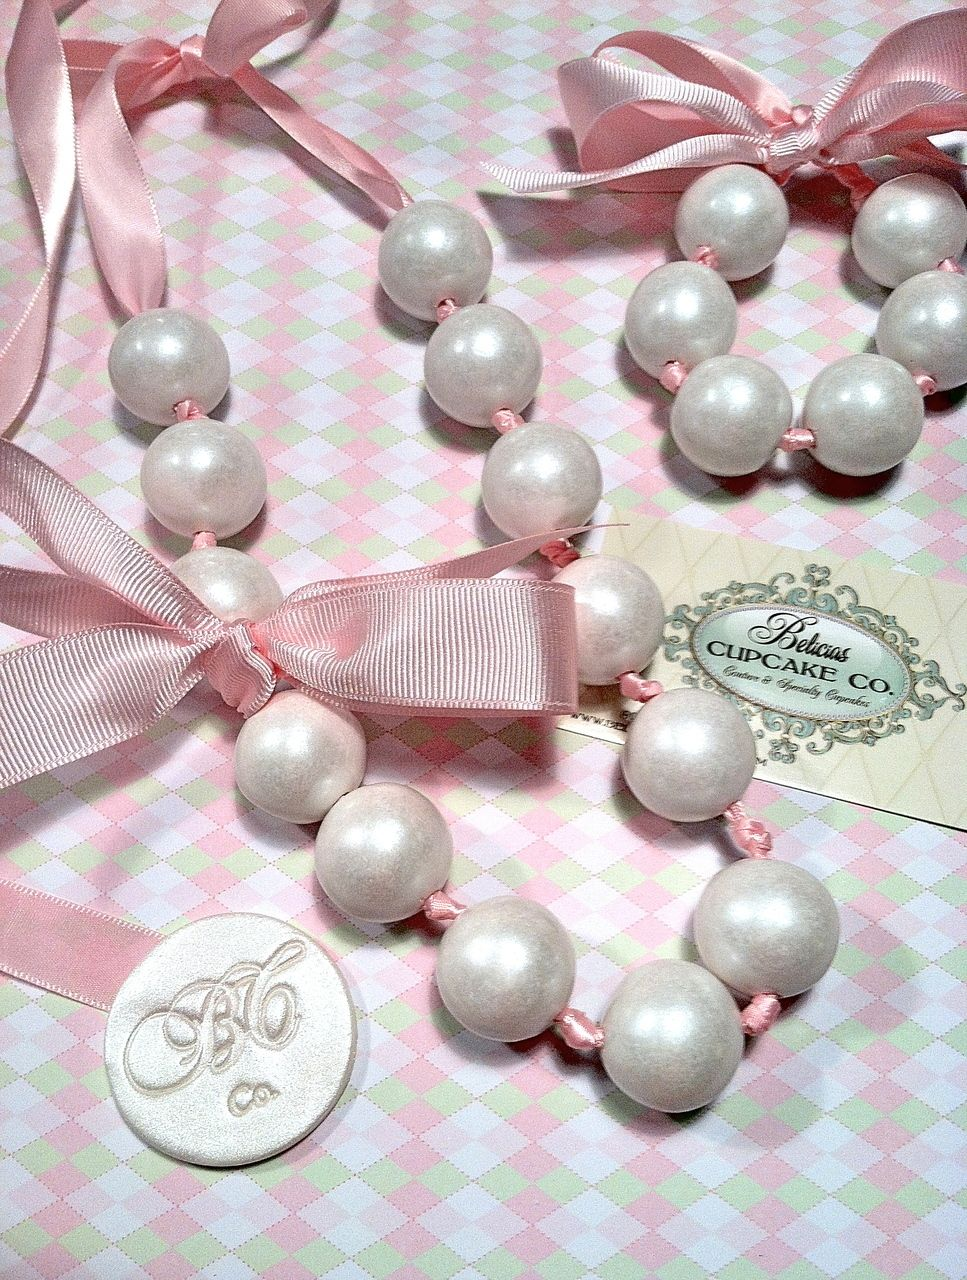 Belicia's Cupcake Co. - Edible Gumball Pearl Necklace Perfect as Party Favors, $15.00 (http://www.beliciascupcake.com/edible-gumball-pearl-necklace-perfect-as-party-favors/)